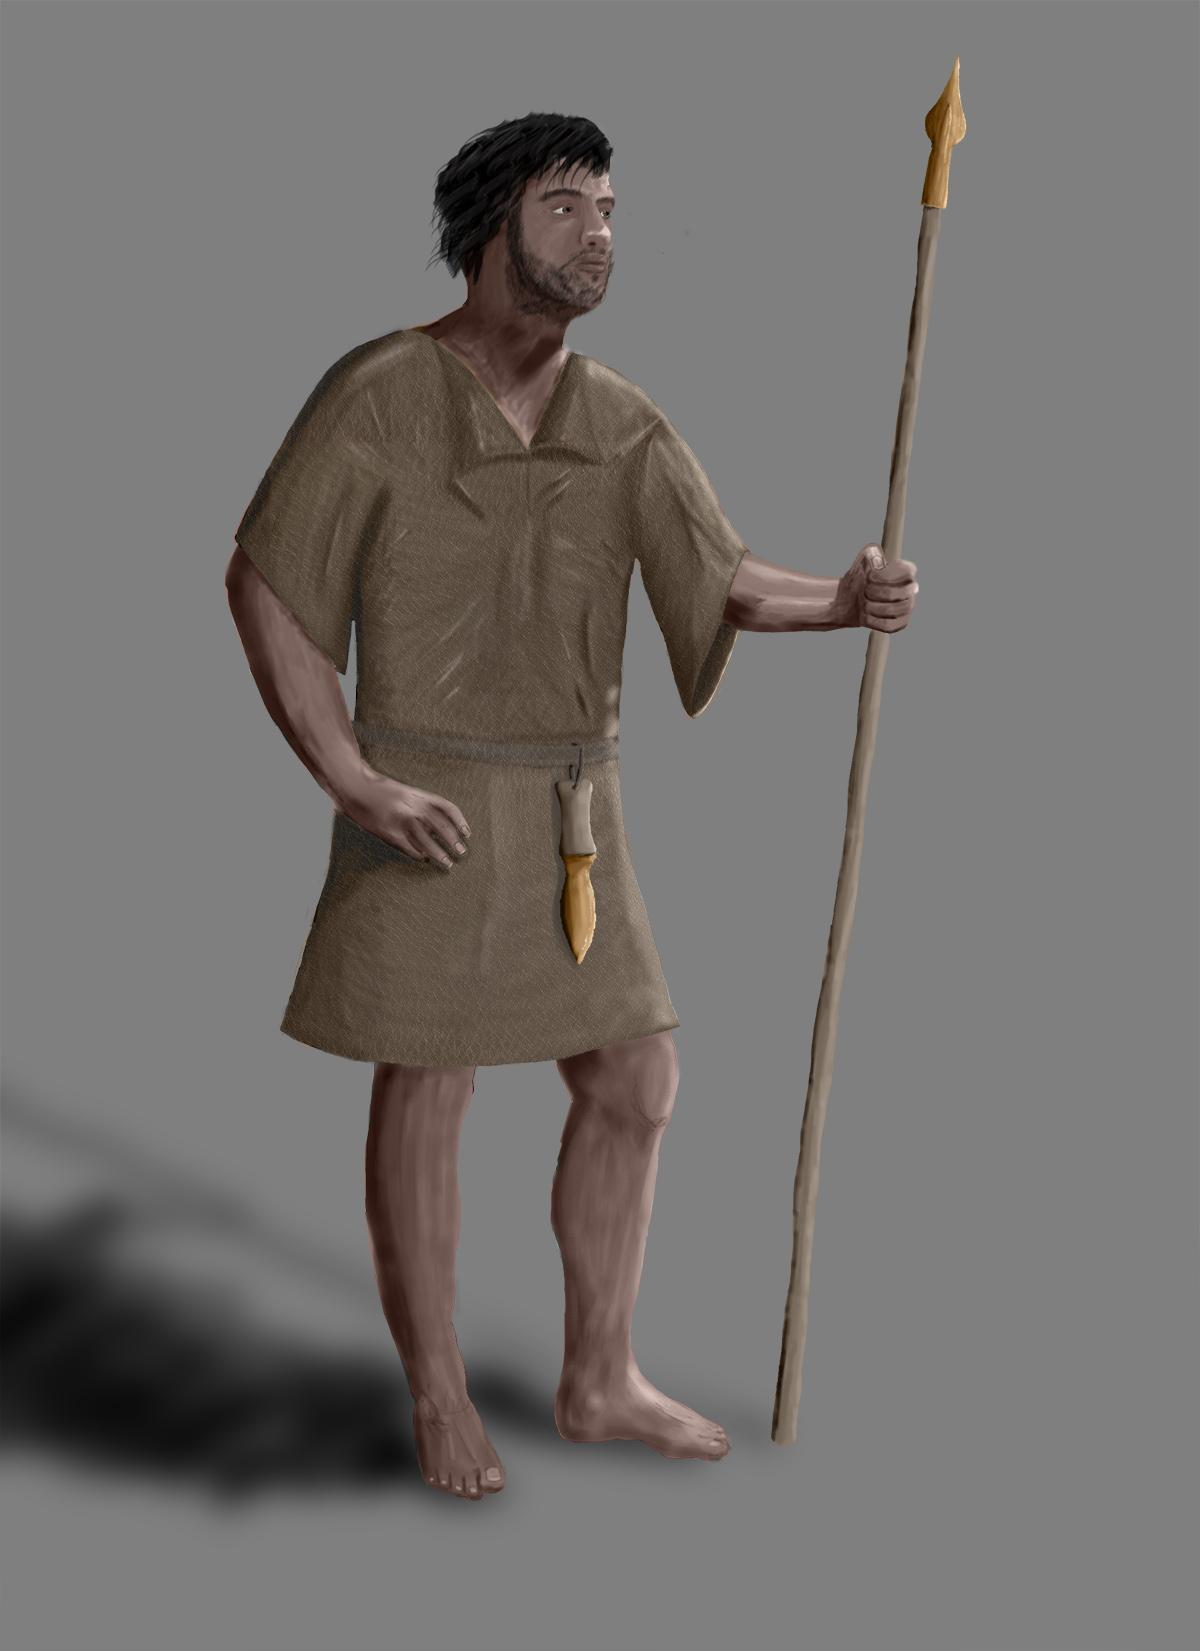 Bronze Age Warrior - Reconstruction